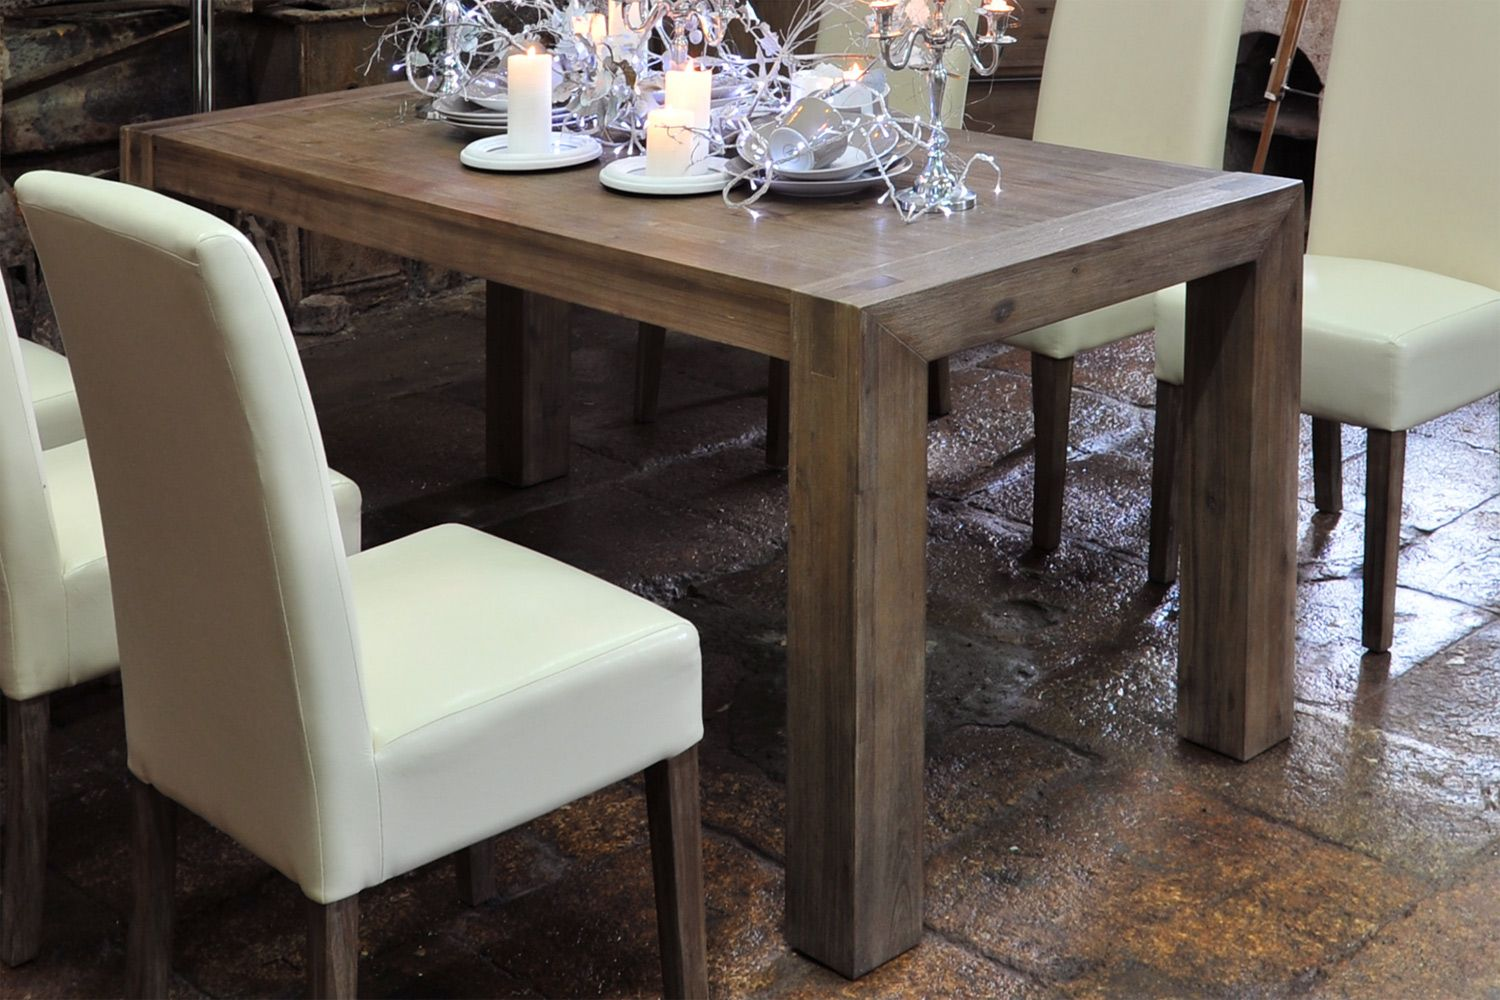 hamburg table | New table | Dining, Dining furniture ...